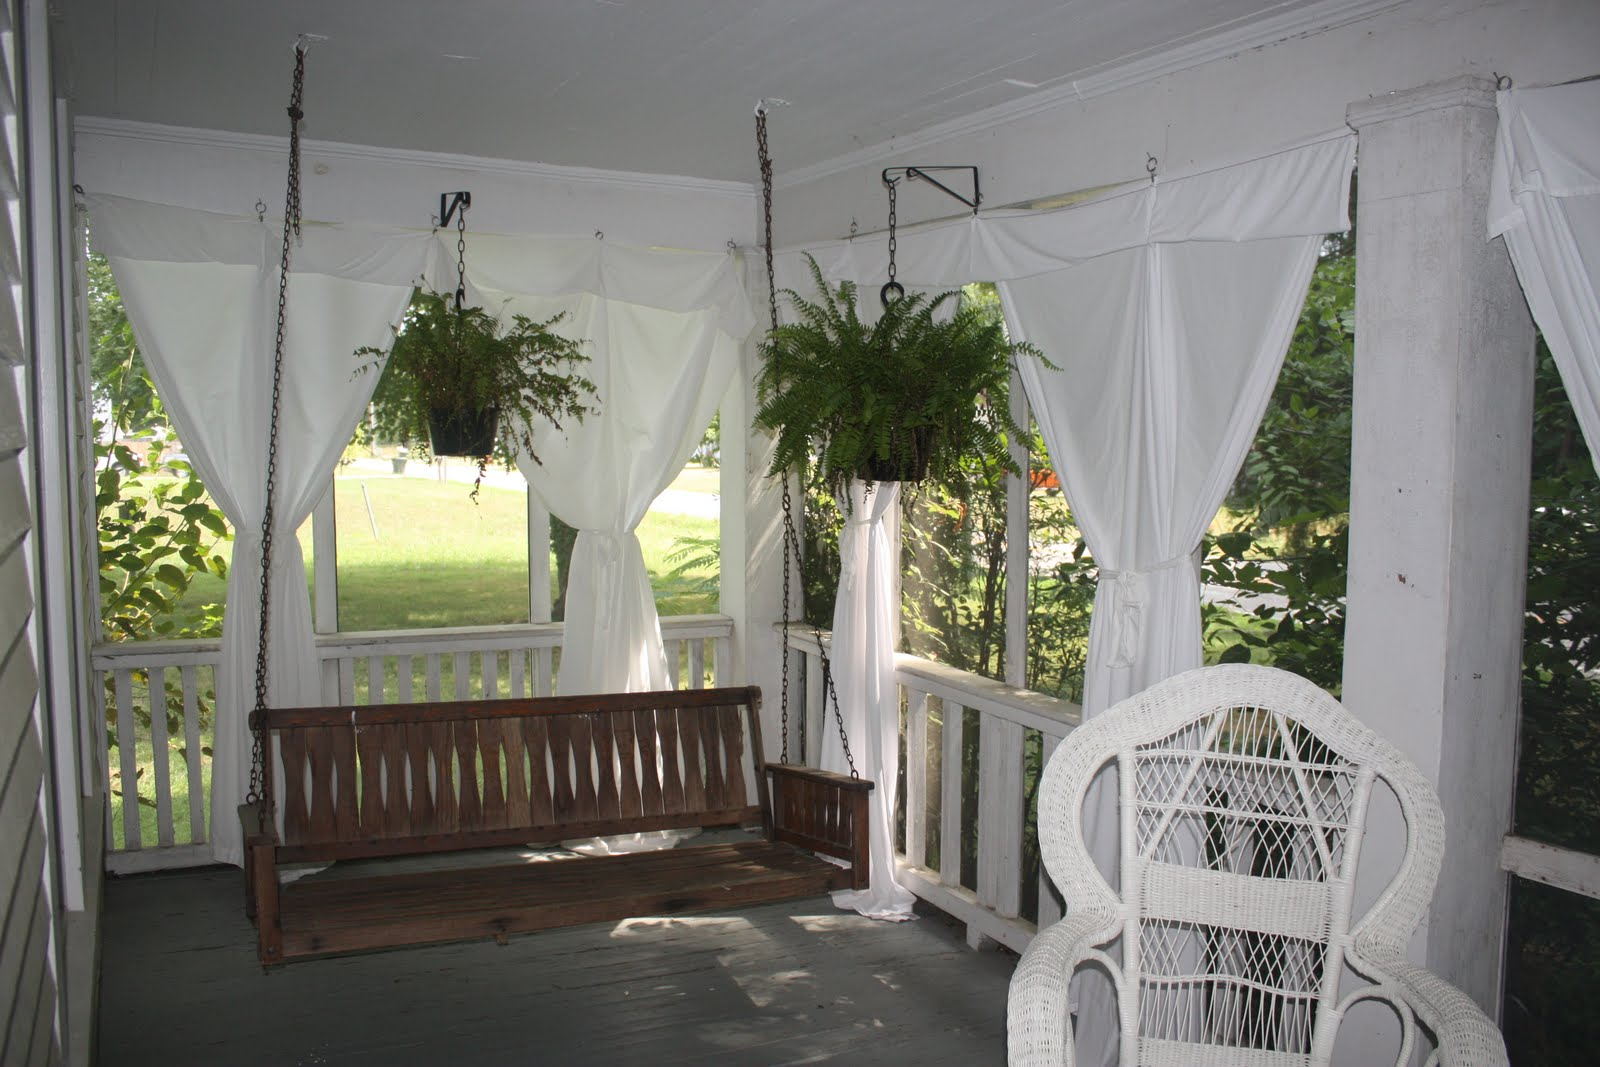 Pure White Draperies For Outdoor A Wooden Hang Bench With Backrest Feature  A White Rattan Chair